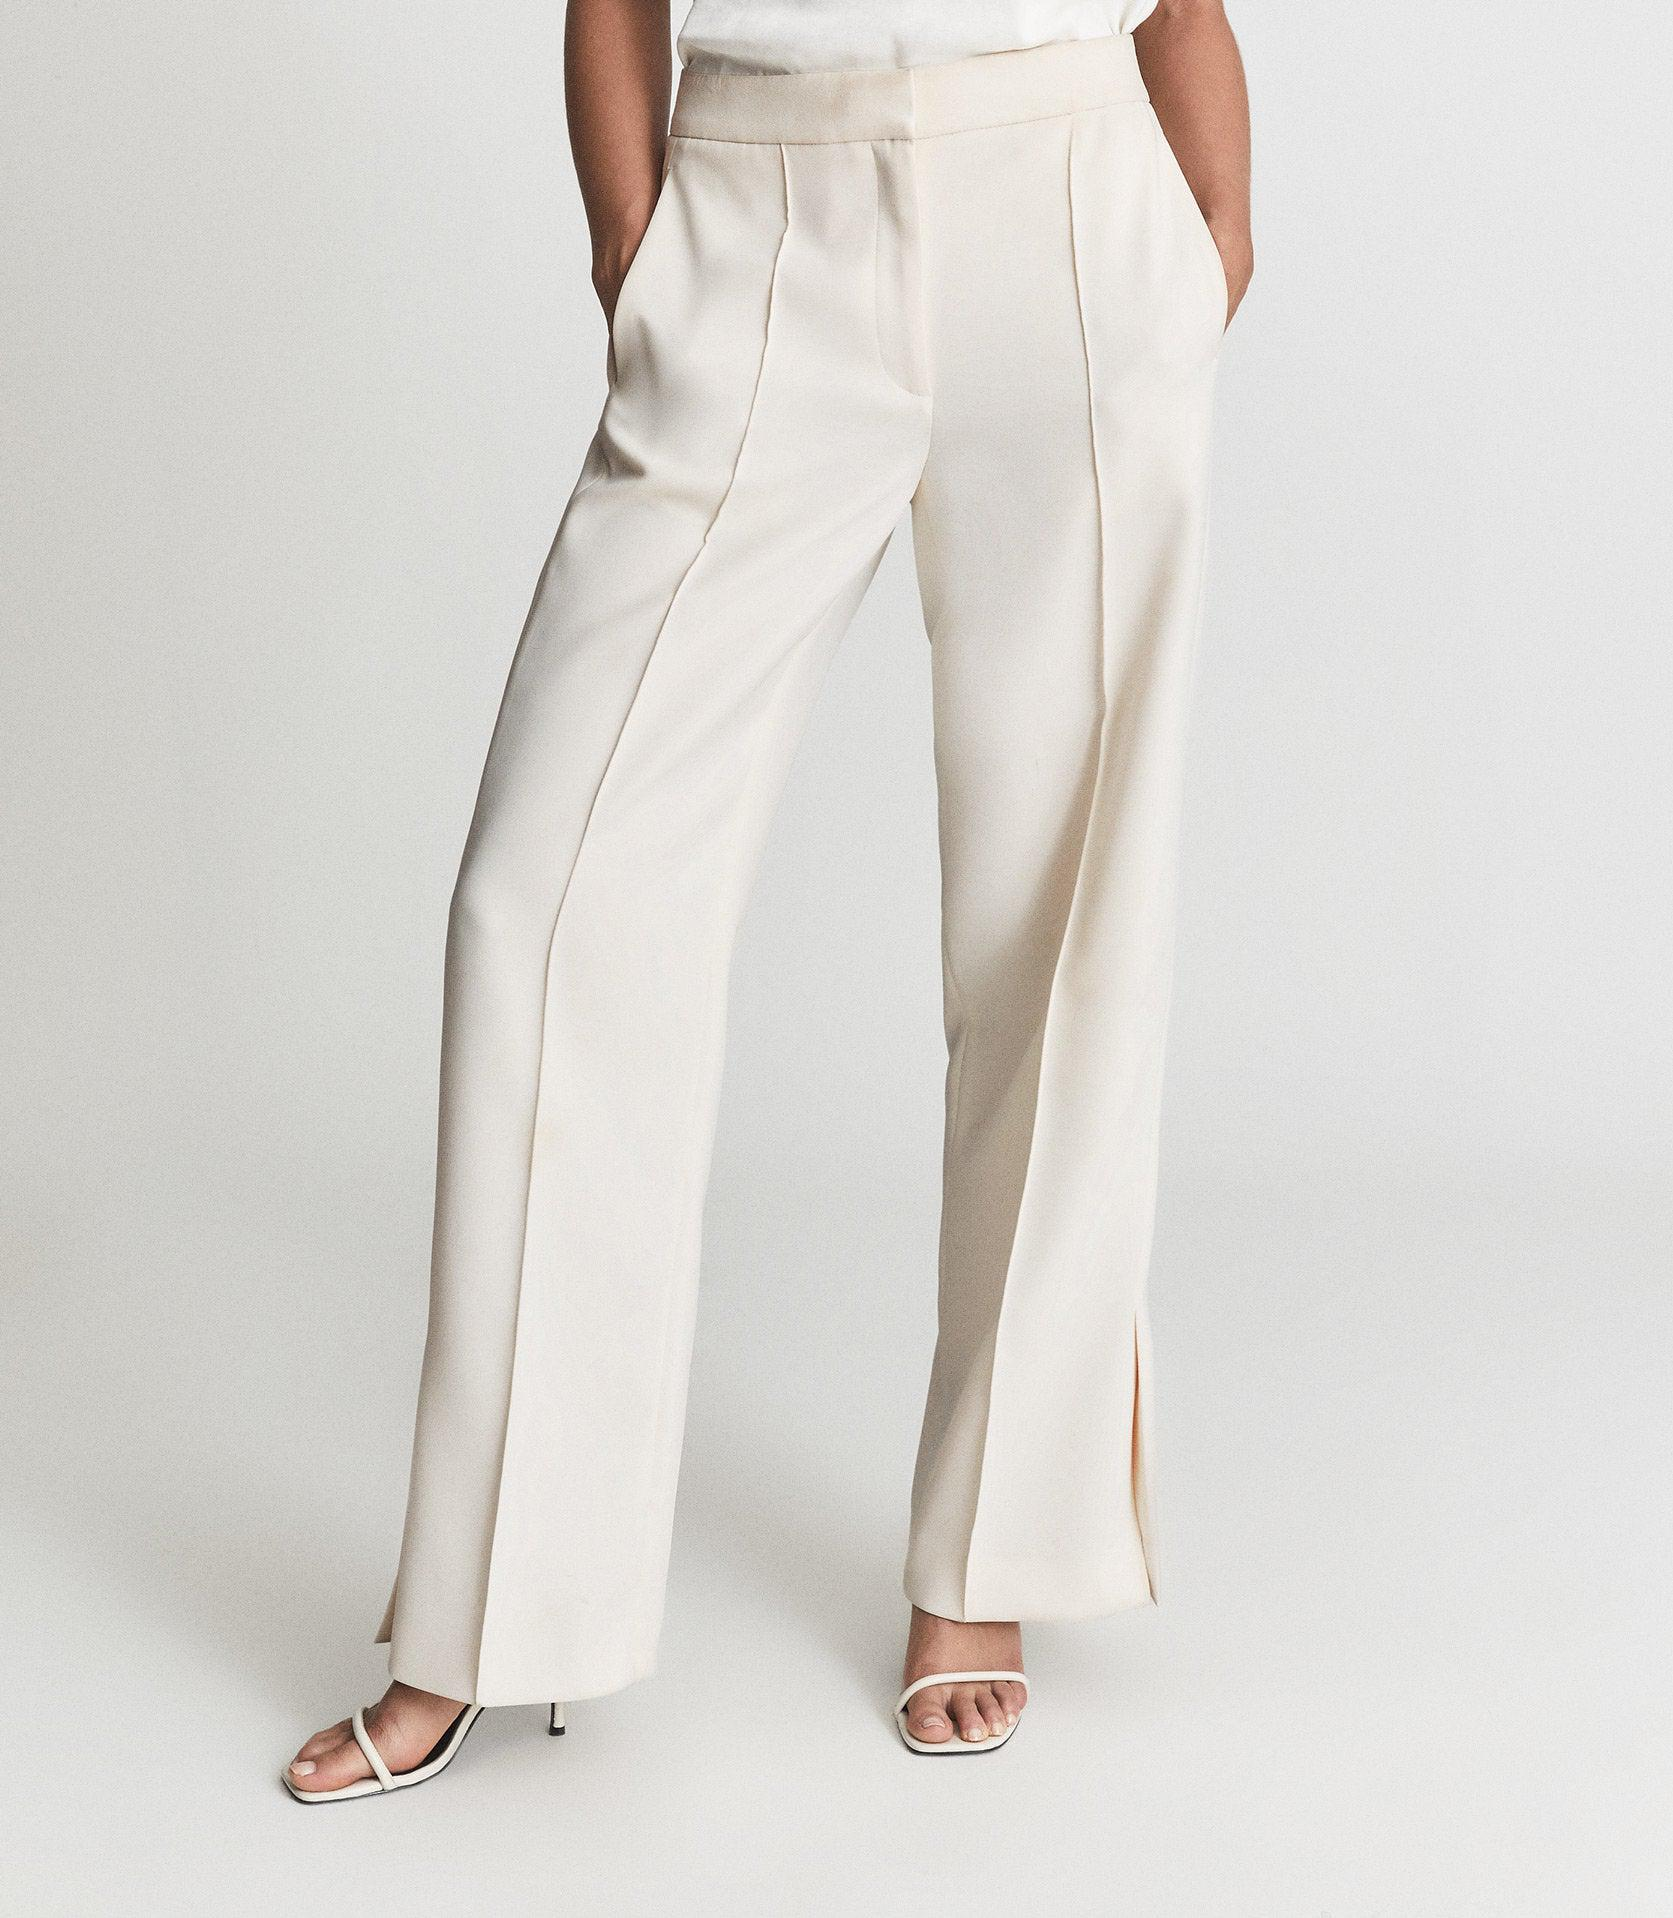 LEAH - WIDE LEG TAILORED TROUSERS 1